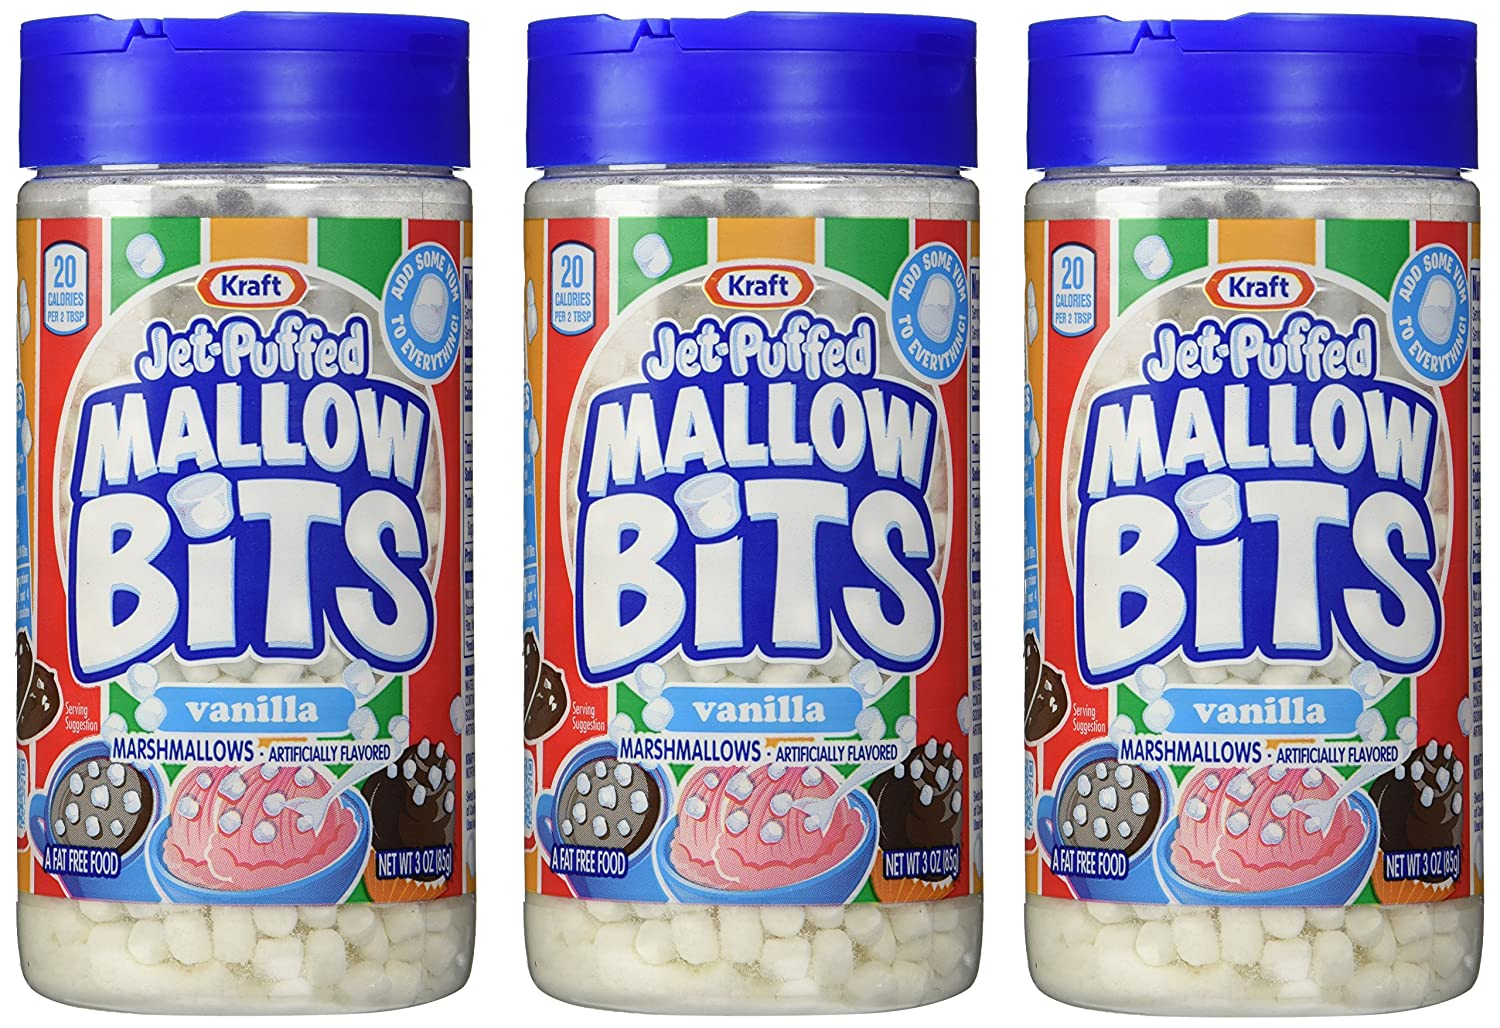 Kraft Jet-puffed Mallow Bits Vanilla Flavor Marshmallows, 3 OZ Bottles (Pack Of 3)